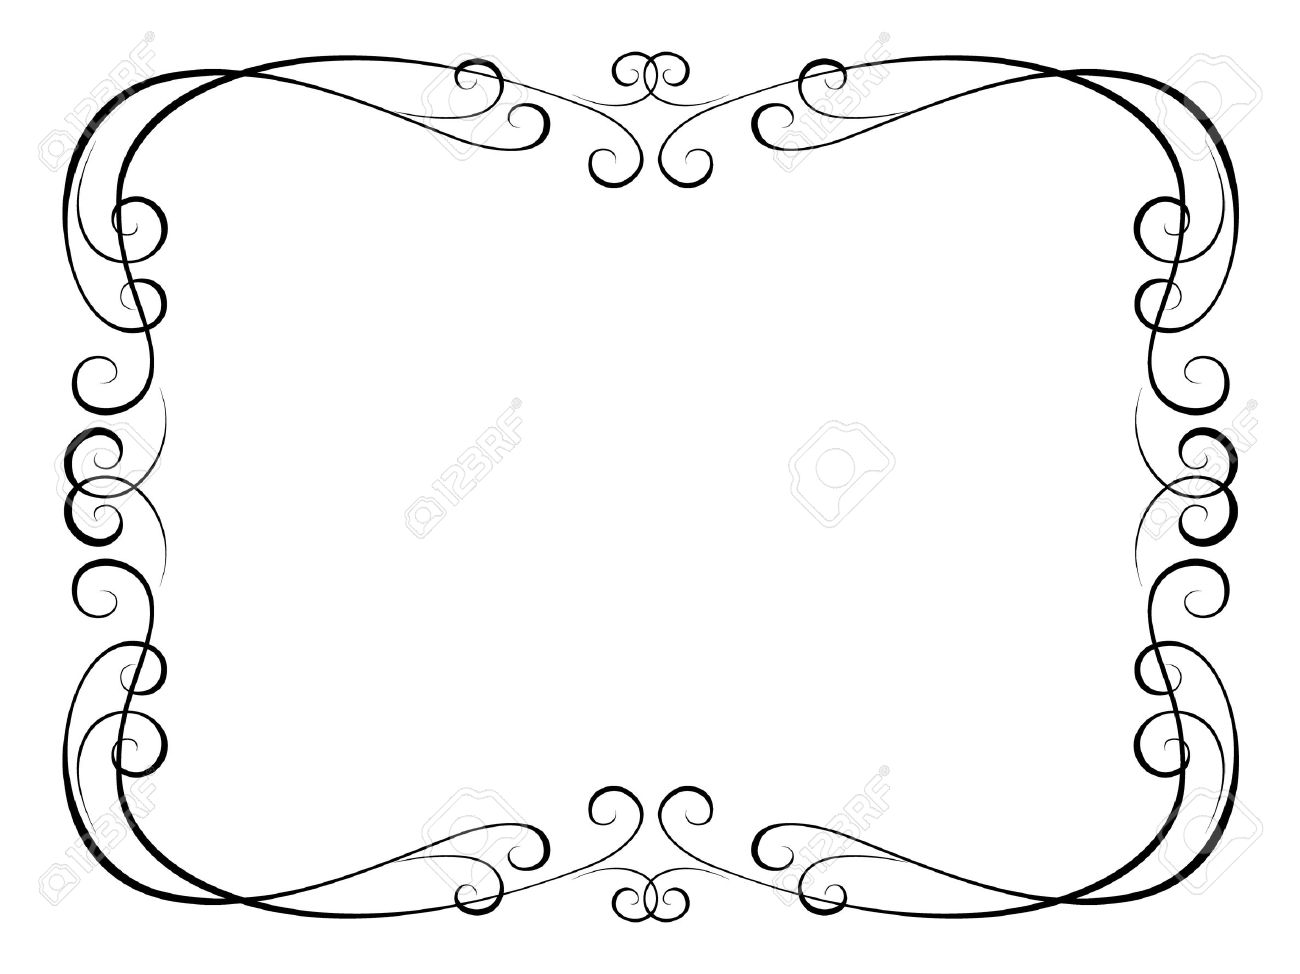 Vector calligraphy penmanship ornamental frame Stock Vector - 9716216